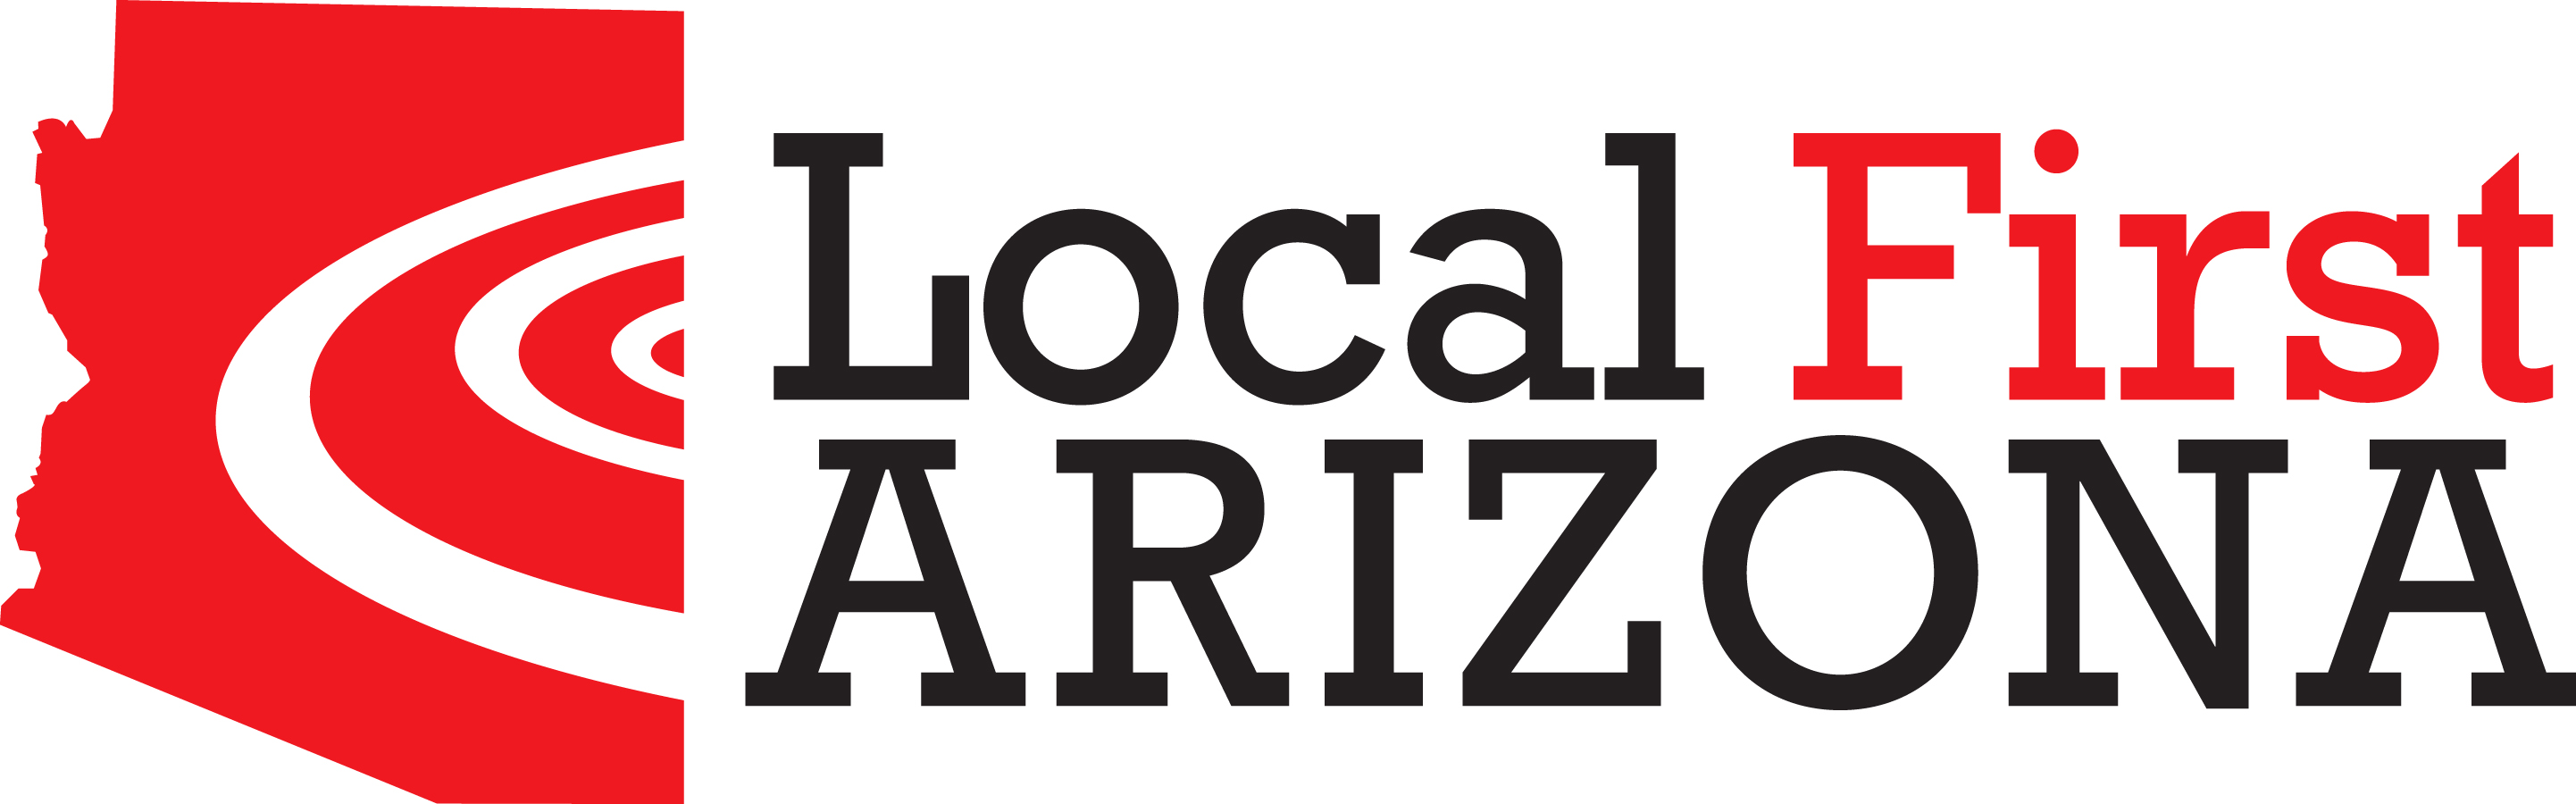 Local First Arizona Interns Logo